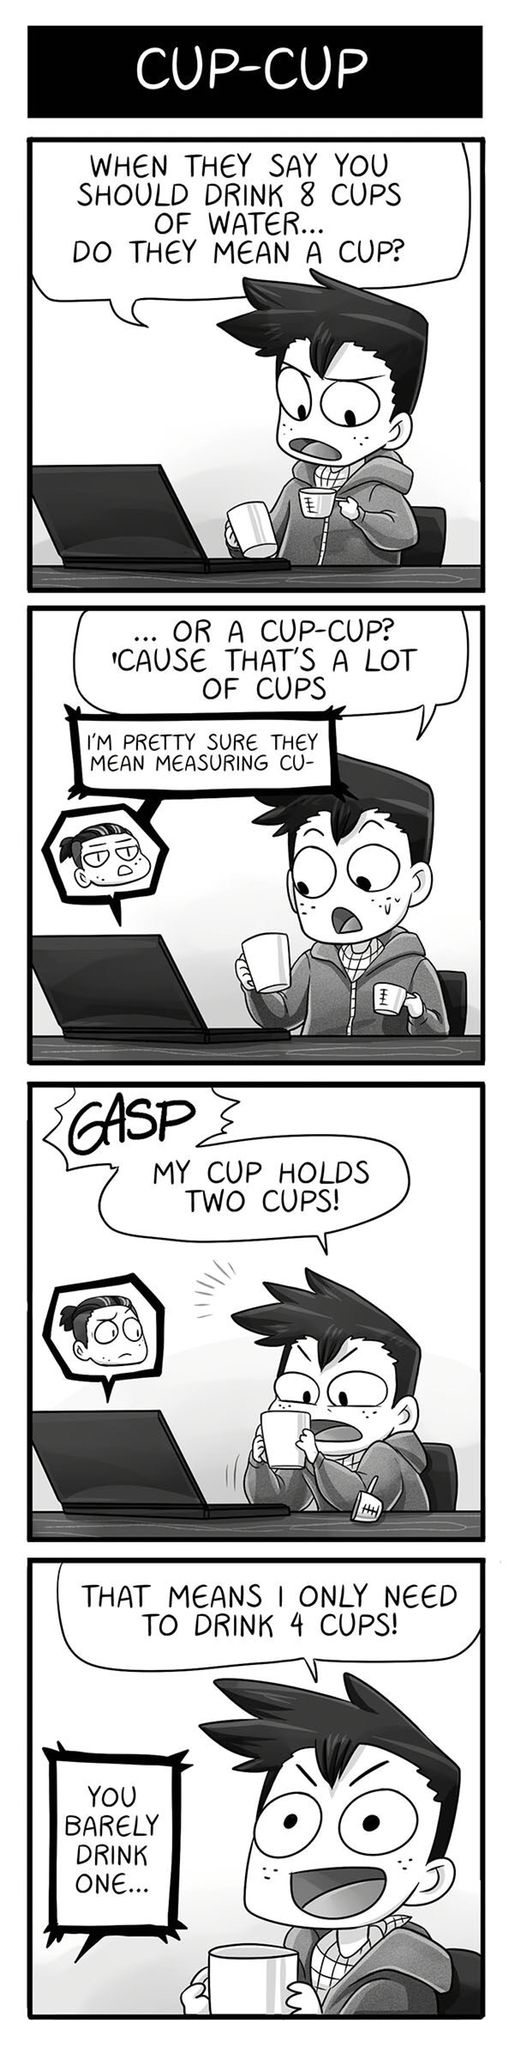 Cups of water XD